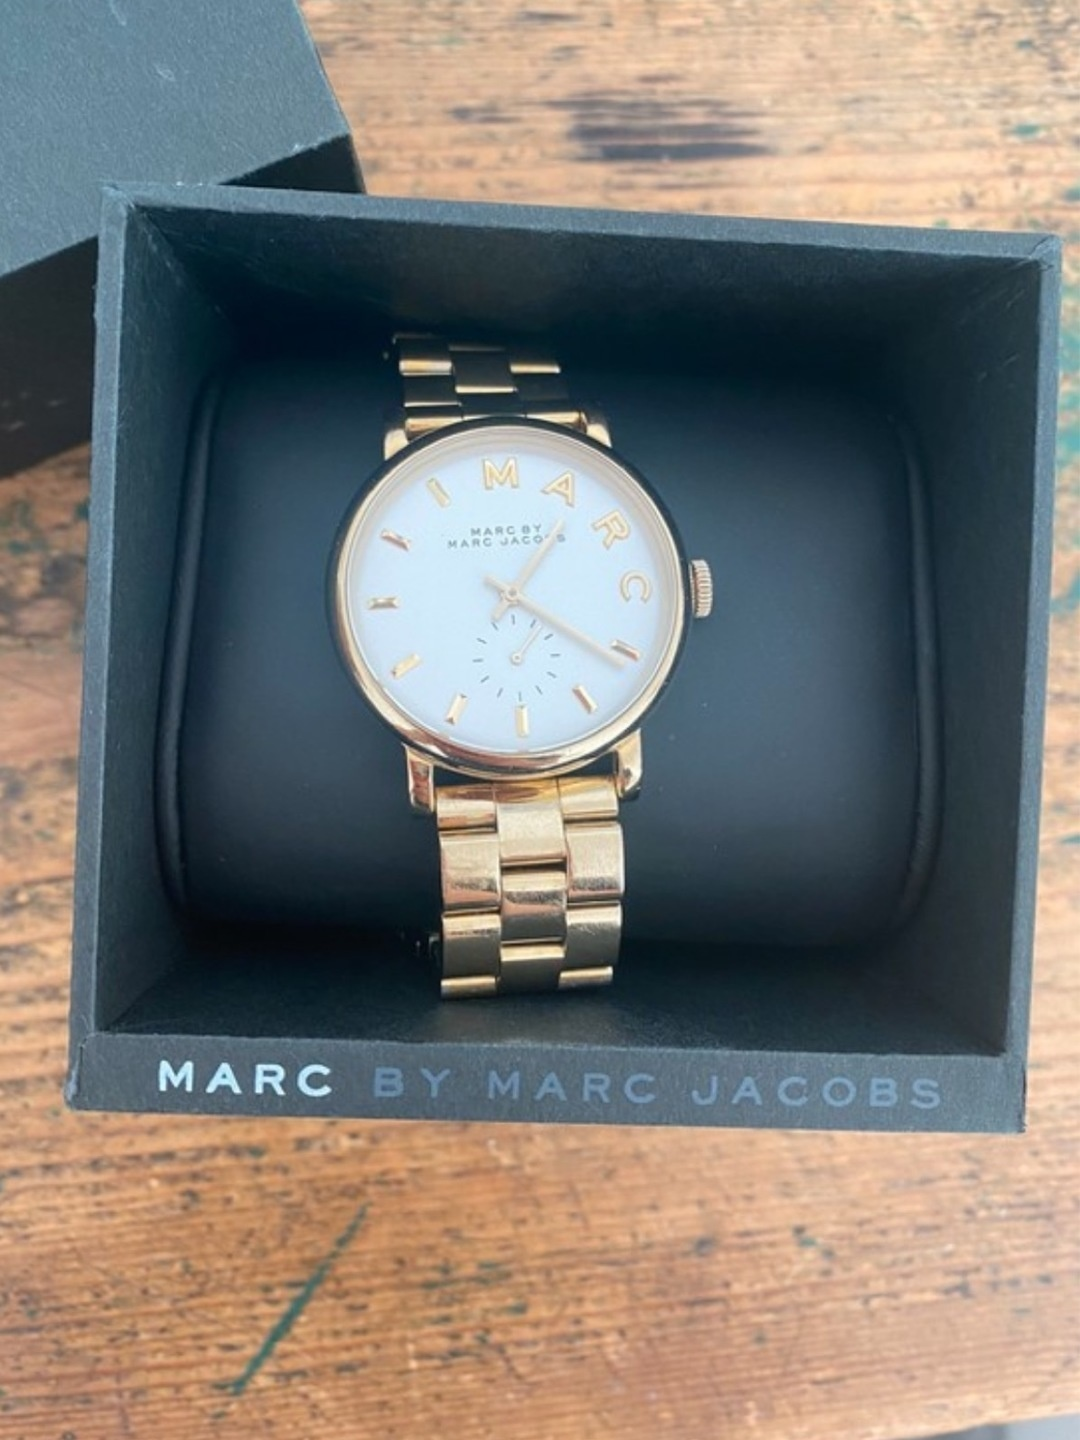 Women's watches - MARC JACOBS photo 4